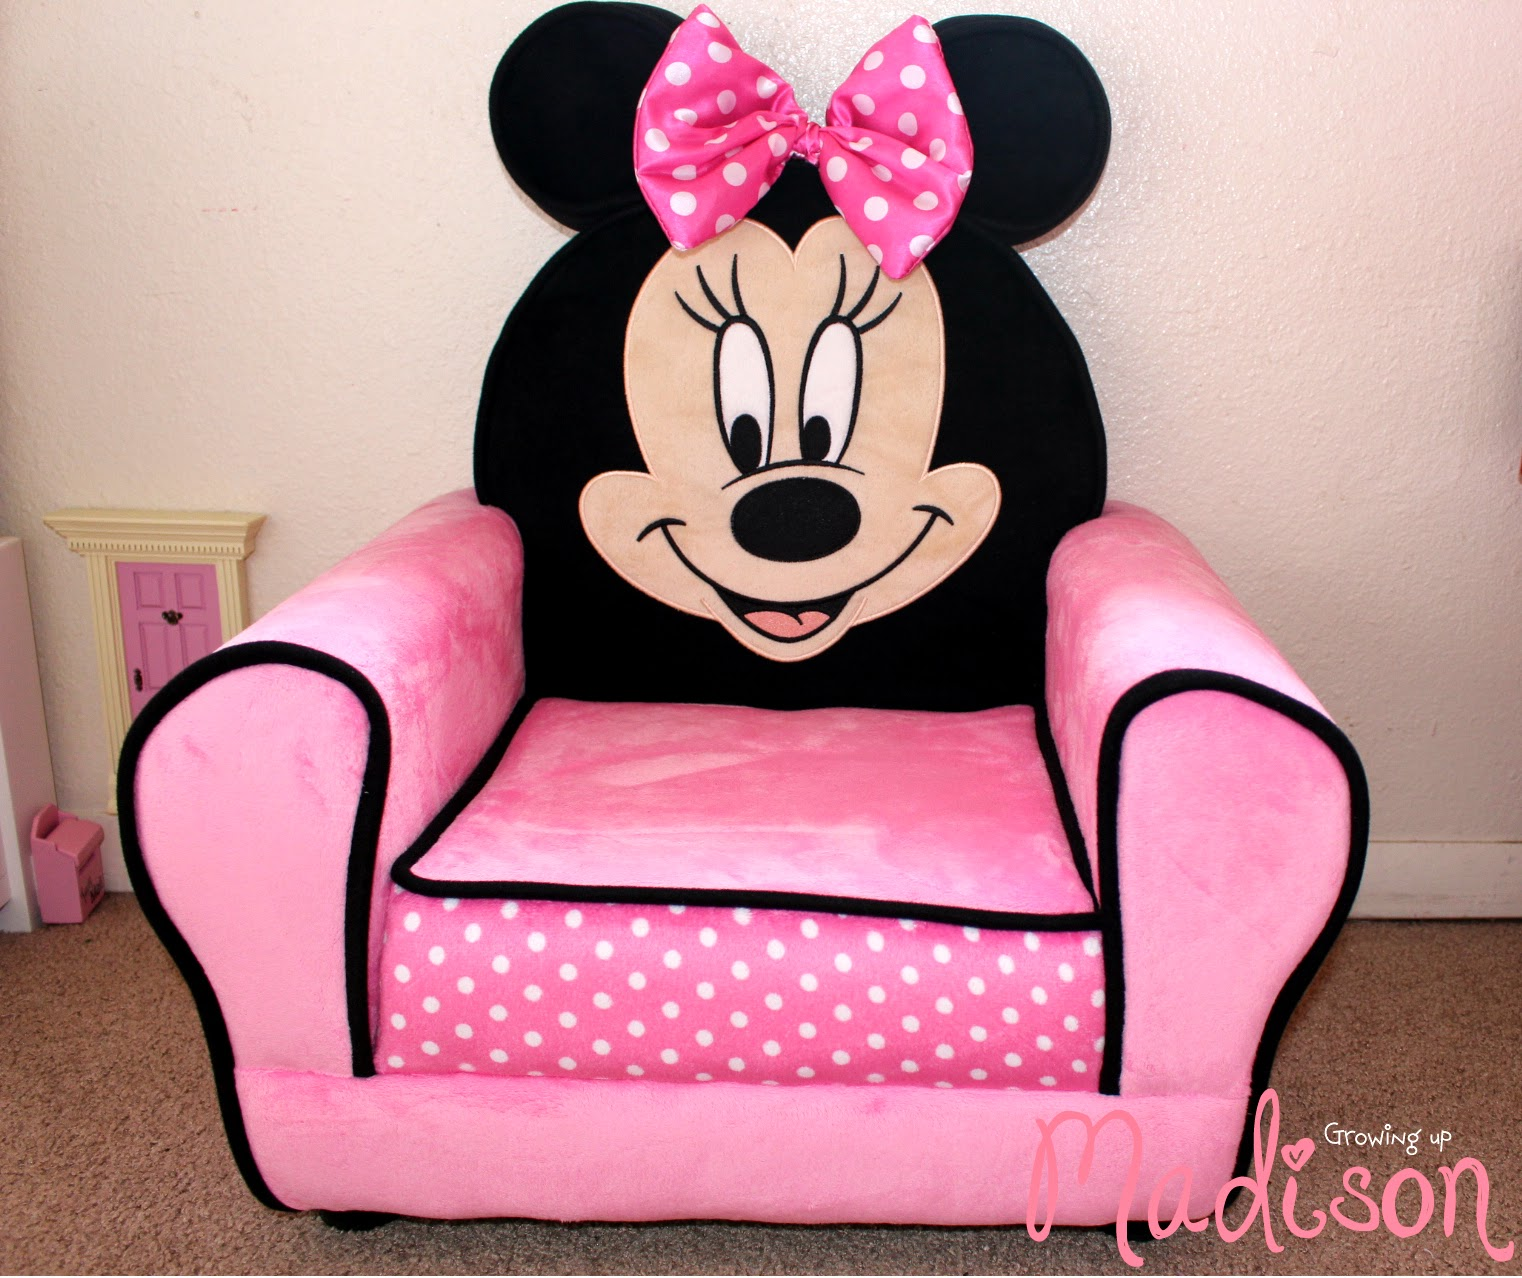 Minnie Mouse Recliner Chair Lounge Chairs For Pool Deck Delta Children Furniture Perfect Any Child 39s Room